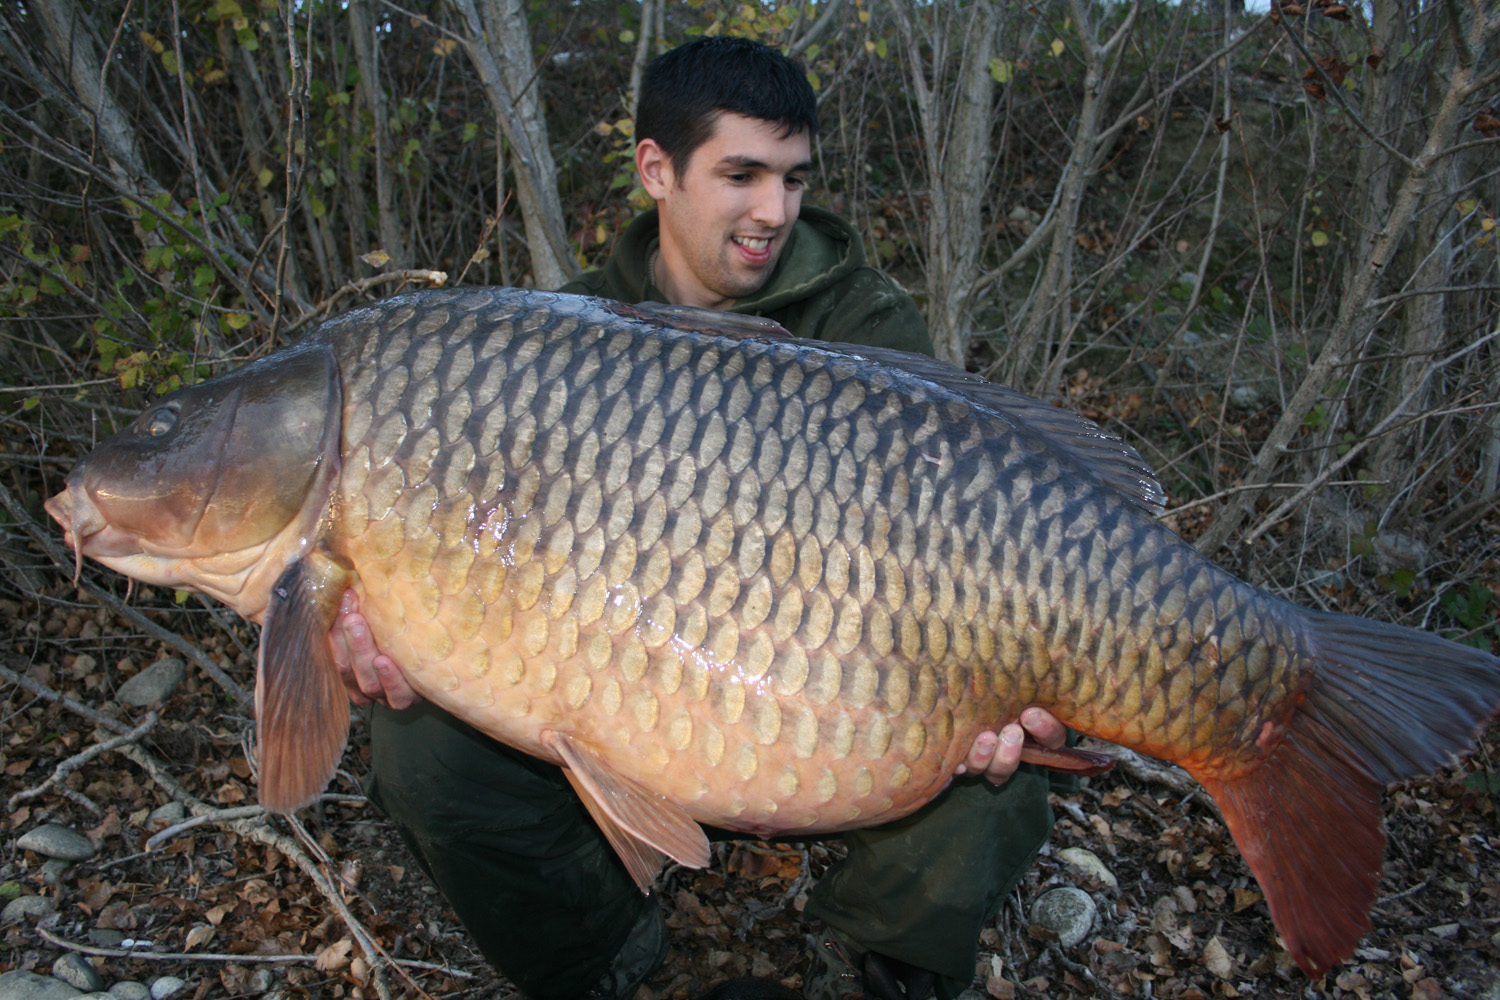 http://starbaits.com/fichiers/images/team/gallery/DUCERE_Cedric/3-DUCERE-CEDRIC.JPG